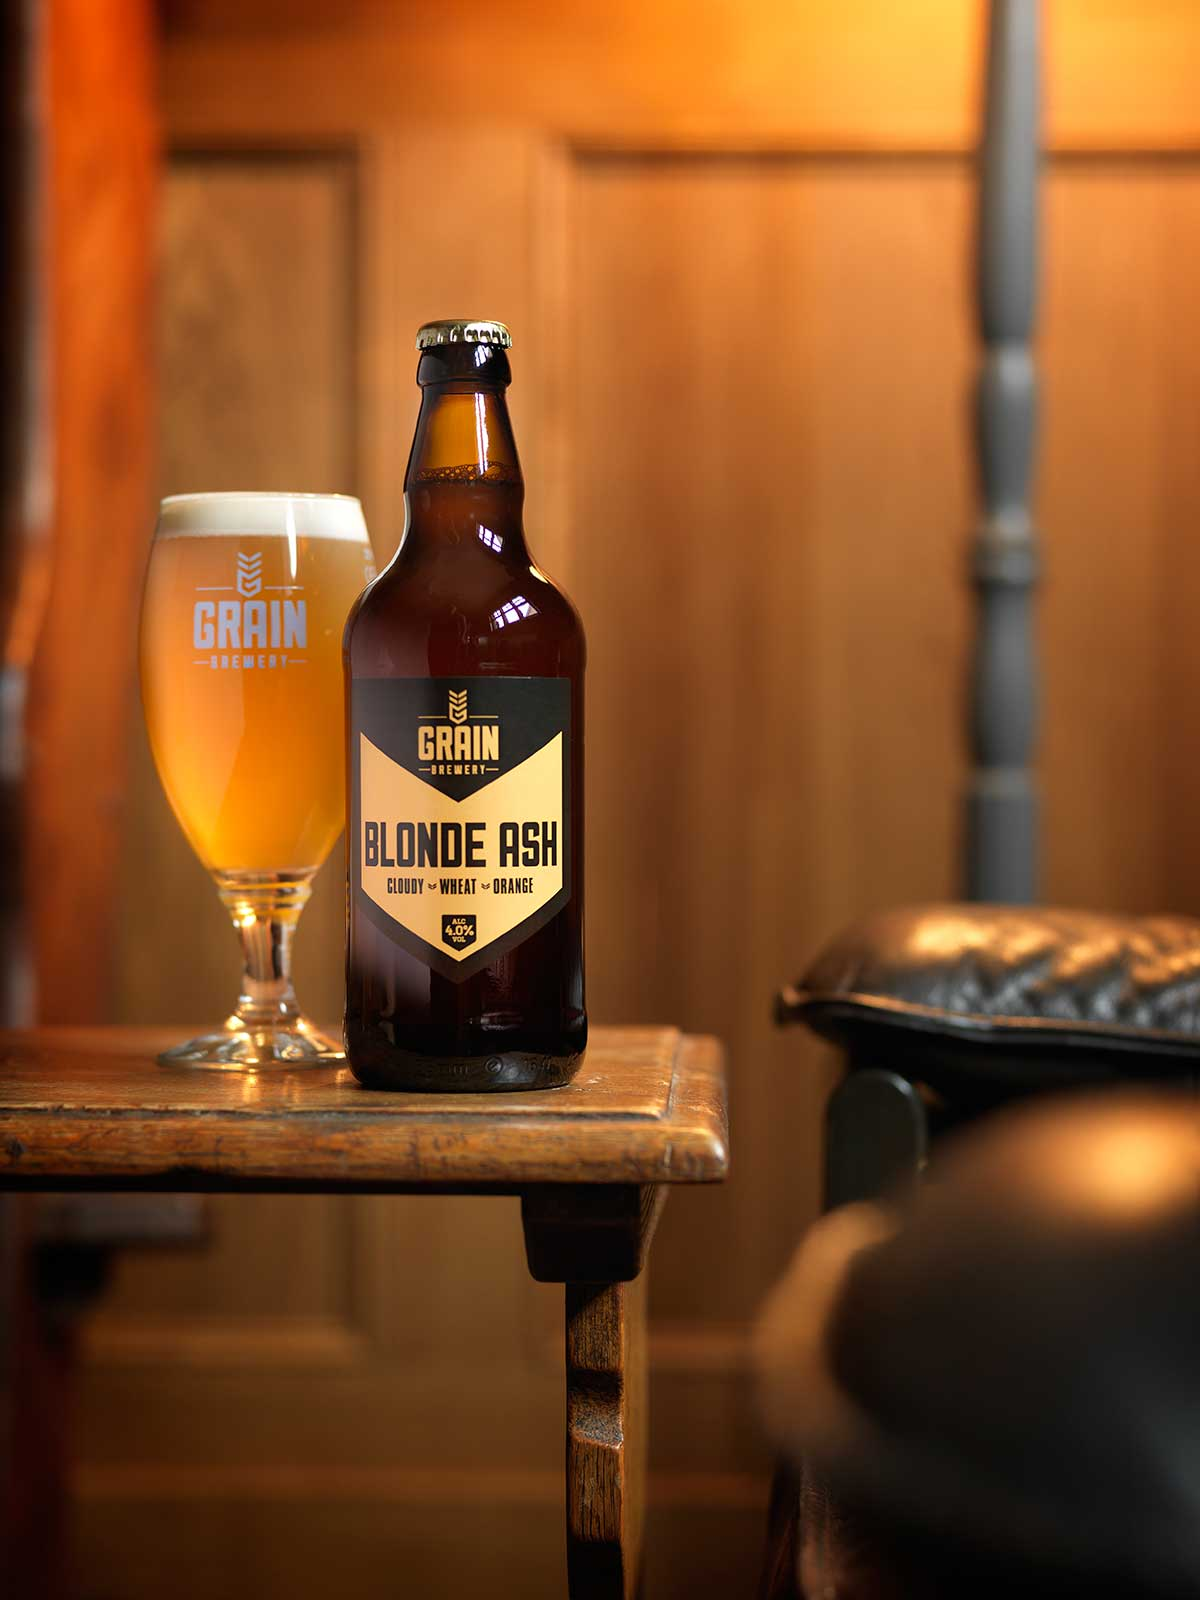 beer-label-design-grain-brewery-blonde-ash-norwich-branding-craft-beer.jpg